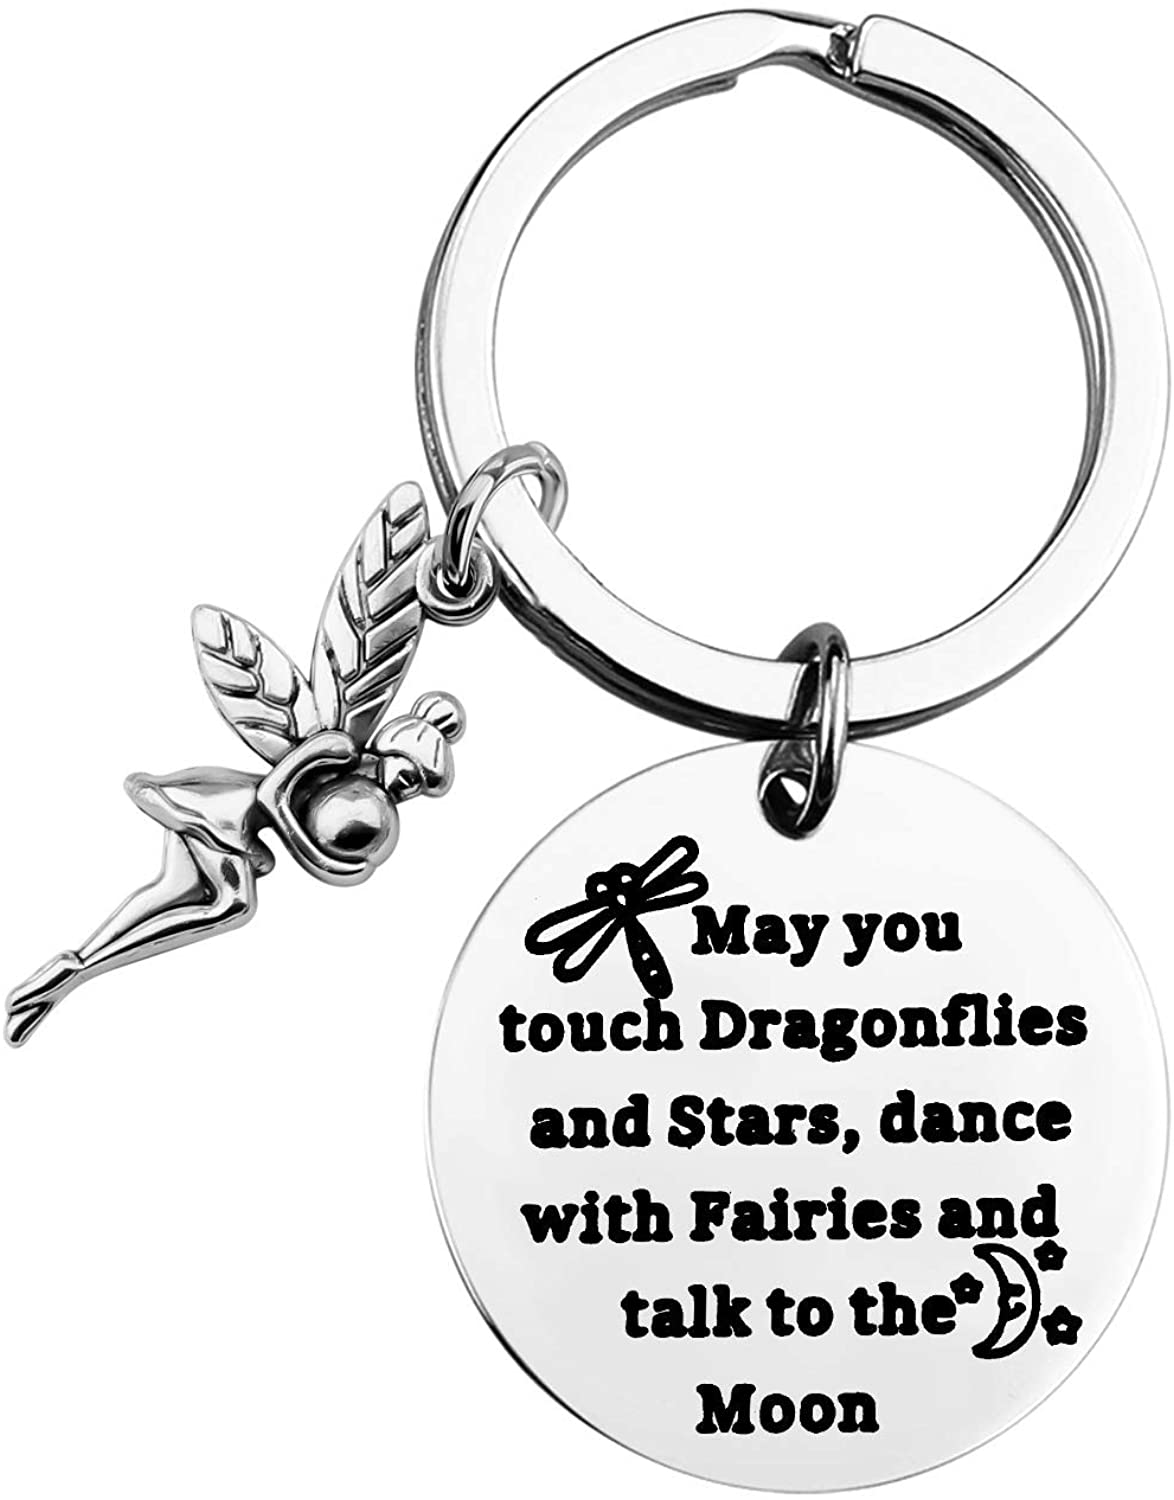 MAOFAED Inspiration Gift Dragonfly Gift Fairy Gift Moon Gift May You Touch Dragonflies and Stars Dance with Fairies and Talk to The Moon Gift for Daughter Girl